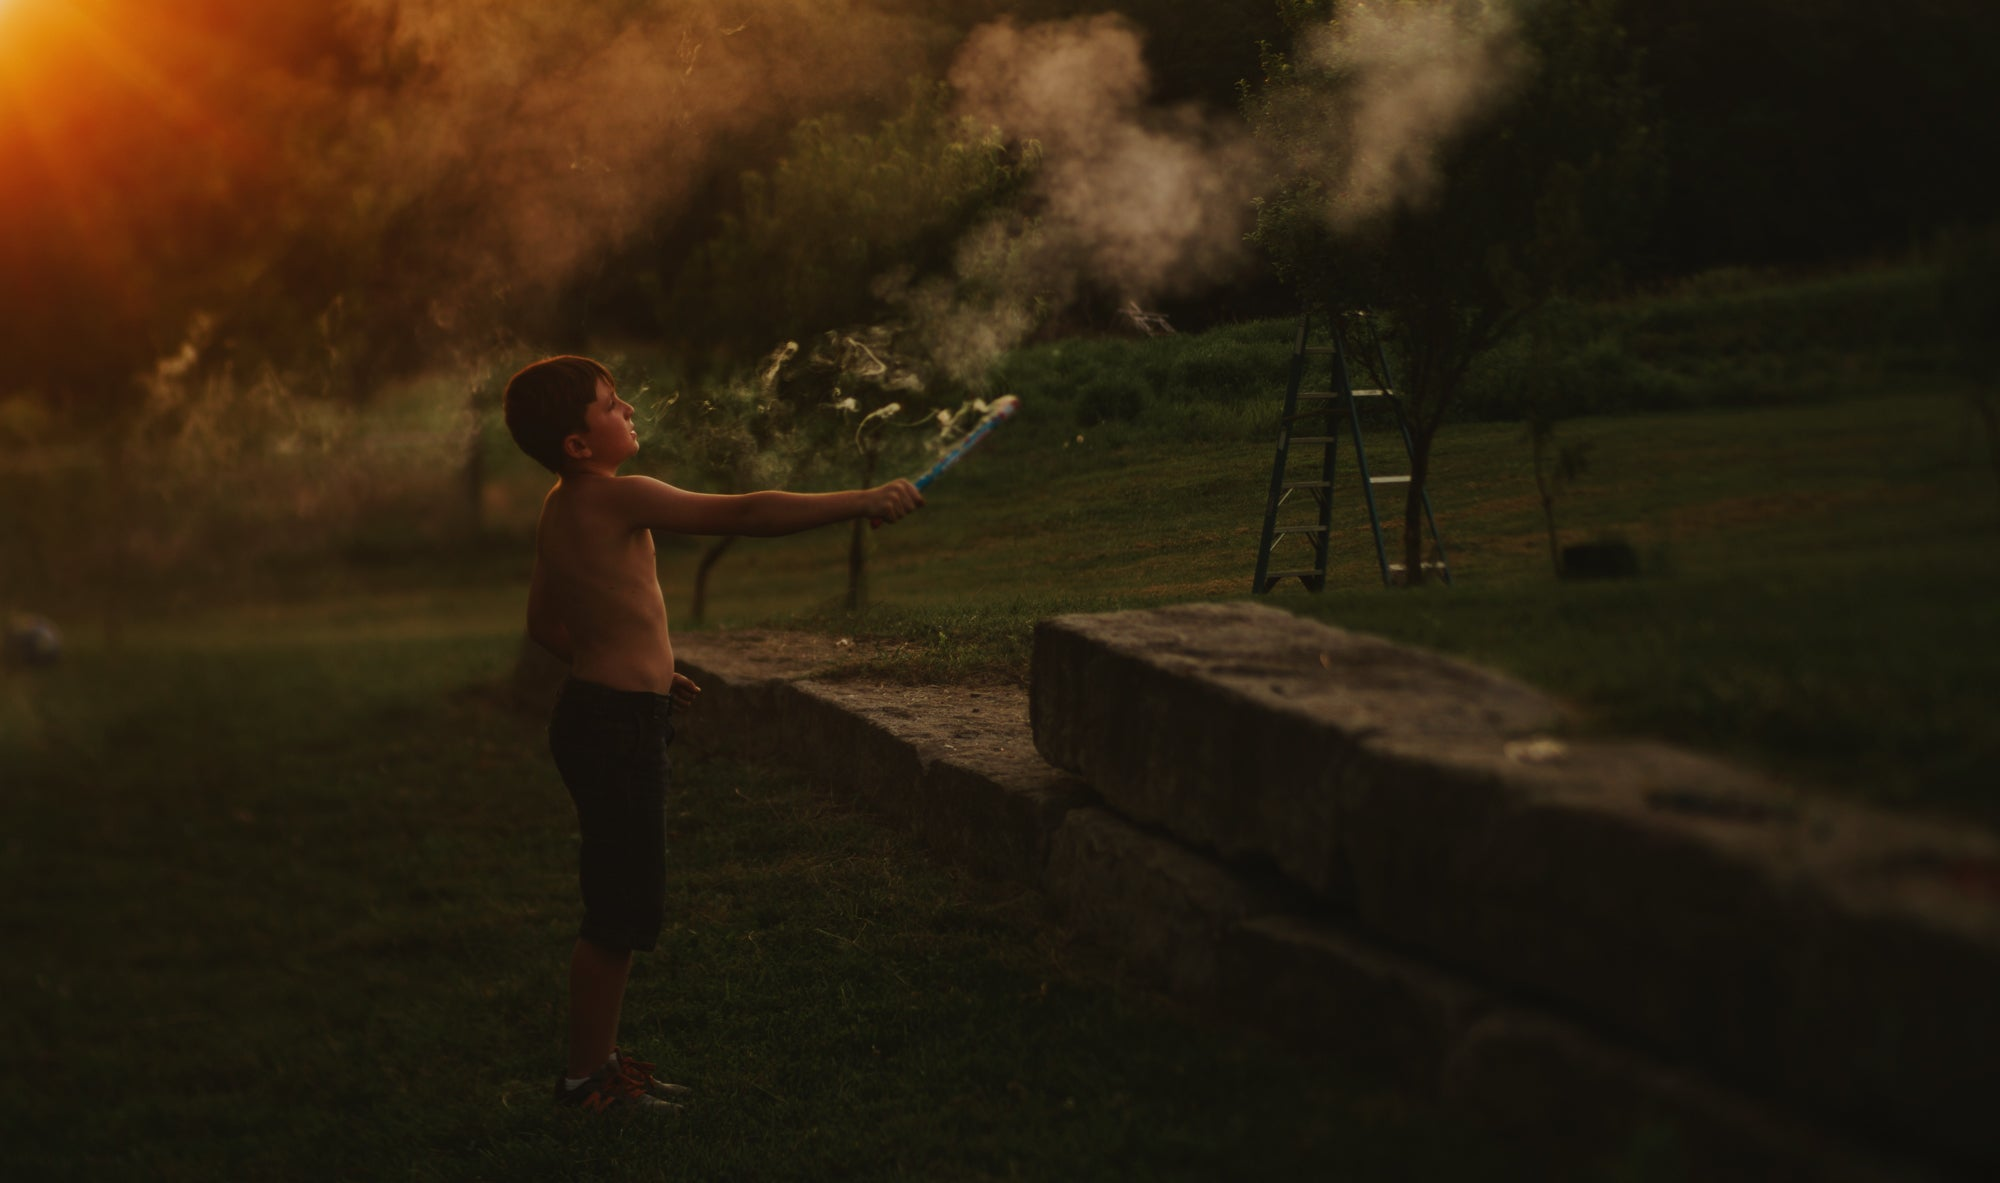 boy with arm extended holding smoking fireworks no shirt summer sunset lensbaby journey story amy cyphers